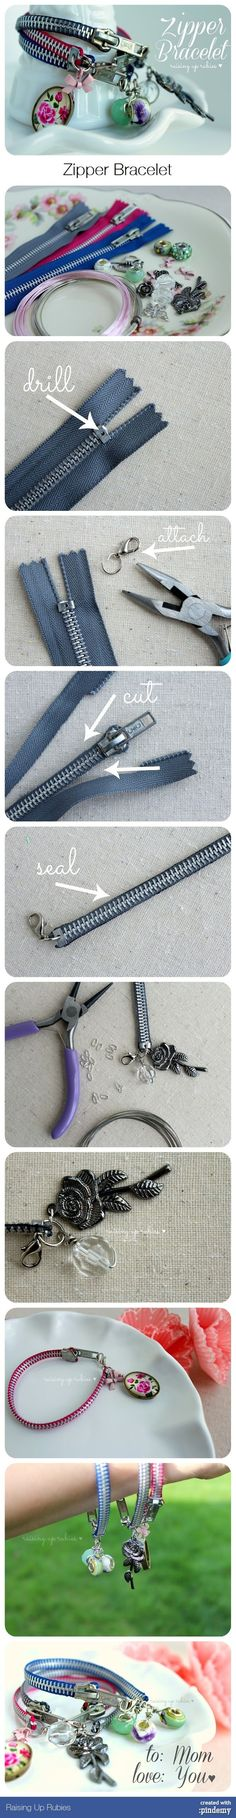 a zipper bracelet tutorial . Zipper Bracelet, Zipper Jewelry, Fabric Jewelry, Beaded Jewelry, Jewellery, Zipper Crafts, Diy Schmuck, Homemade Jewelry, Bijoux Diy